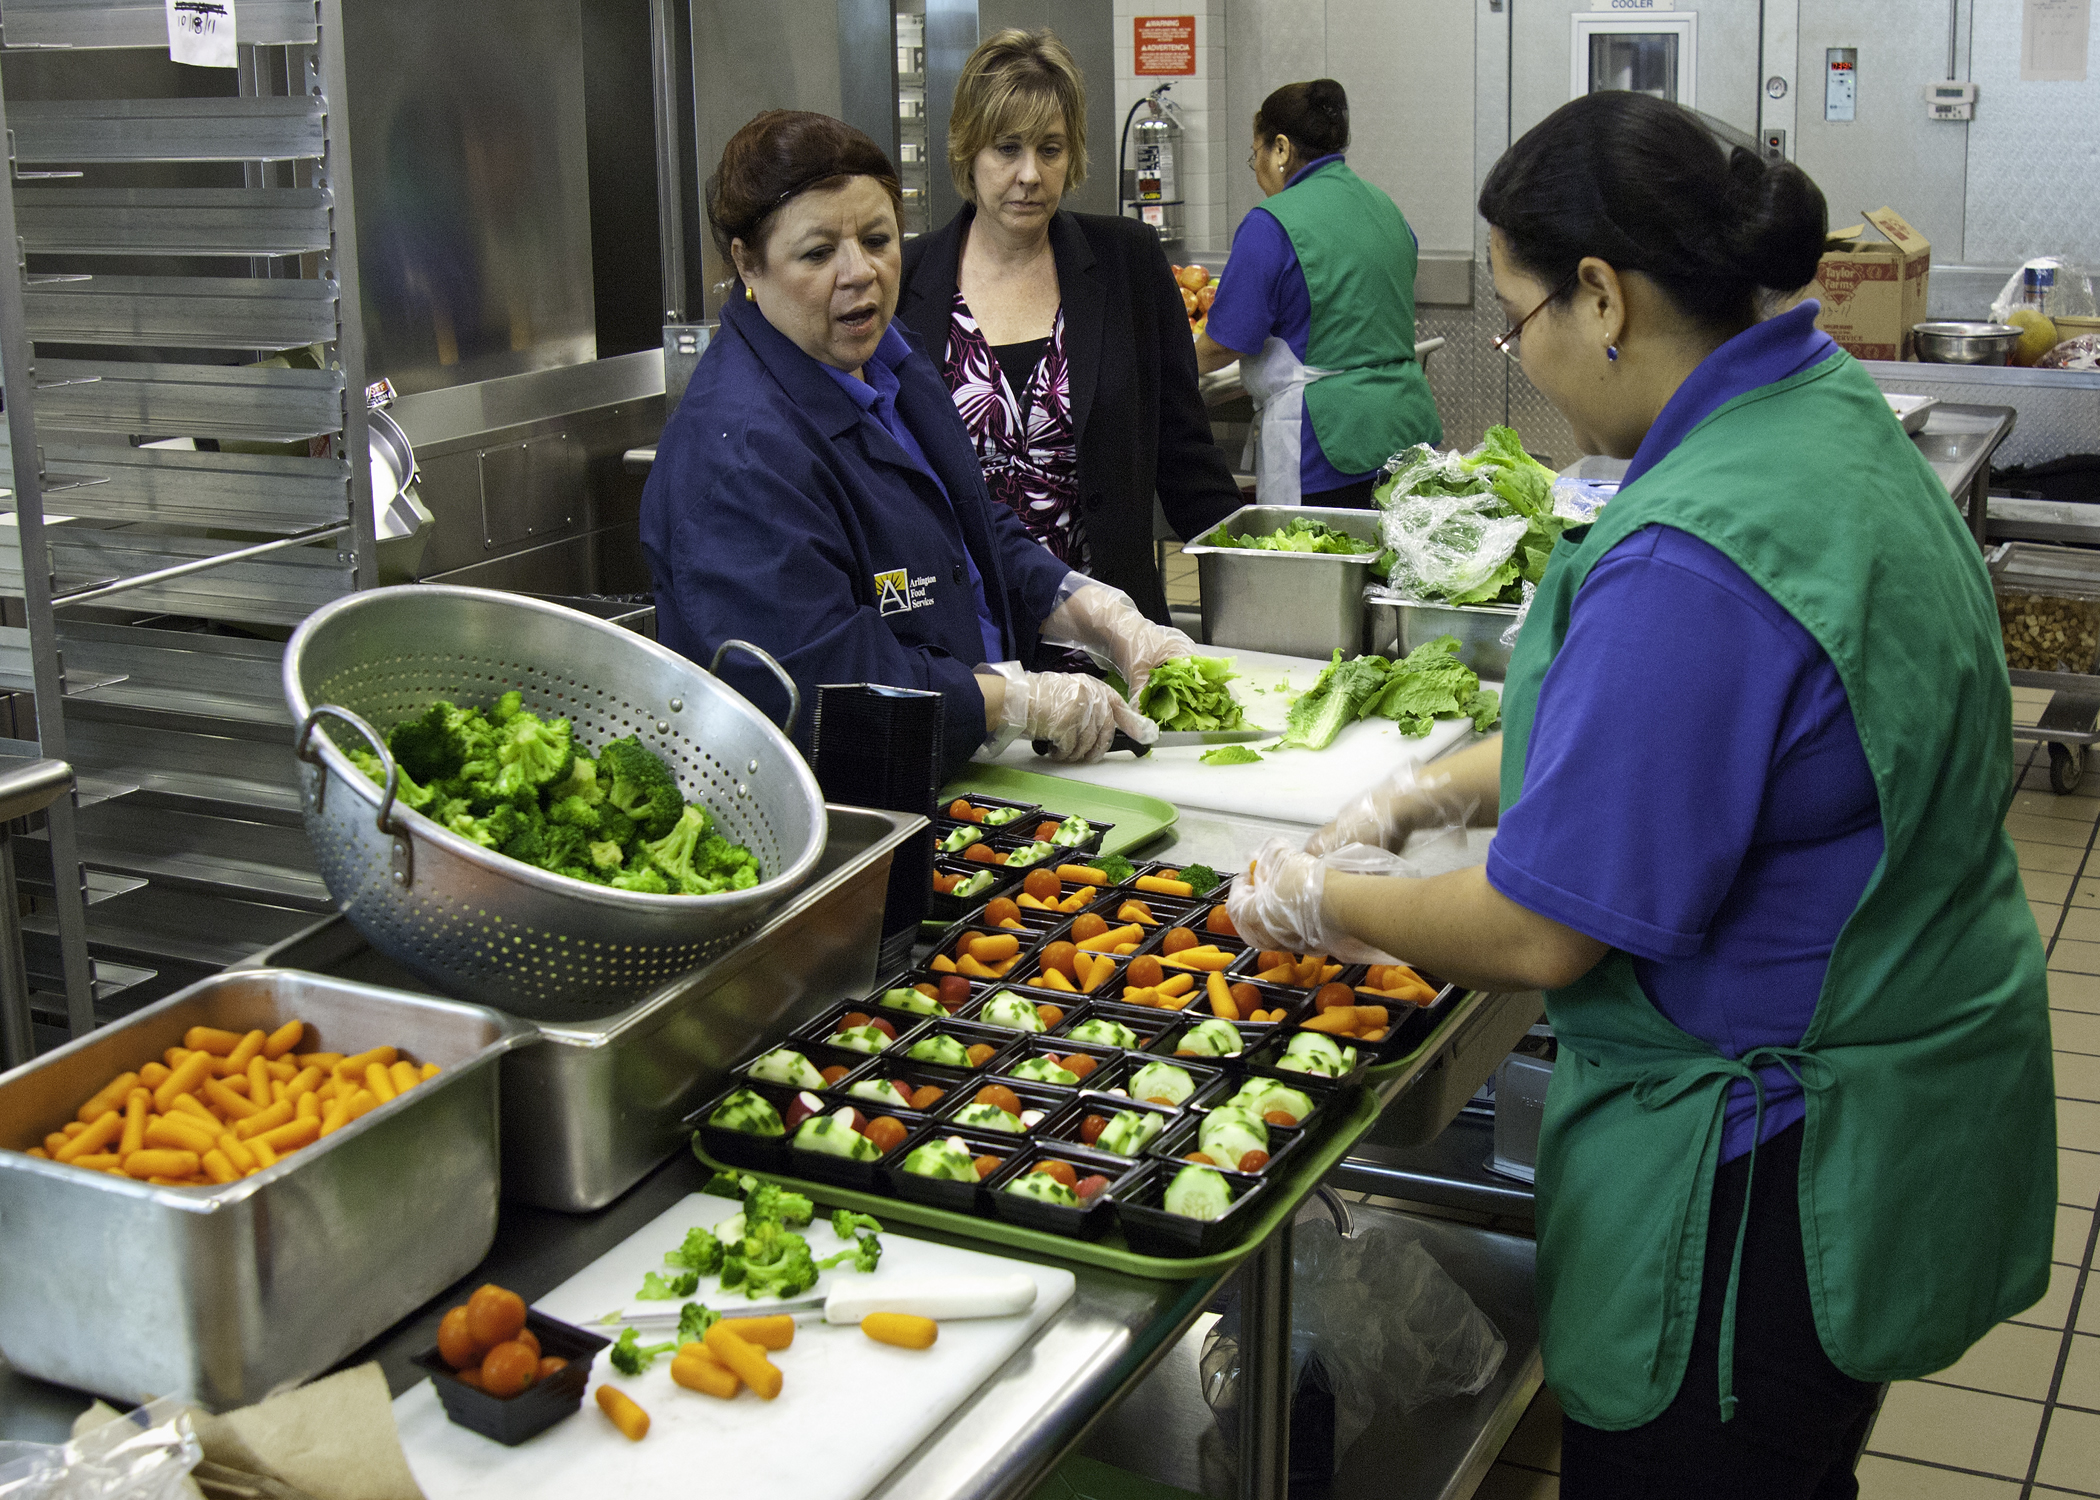 Free lunch preparation in schools